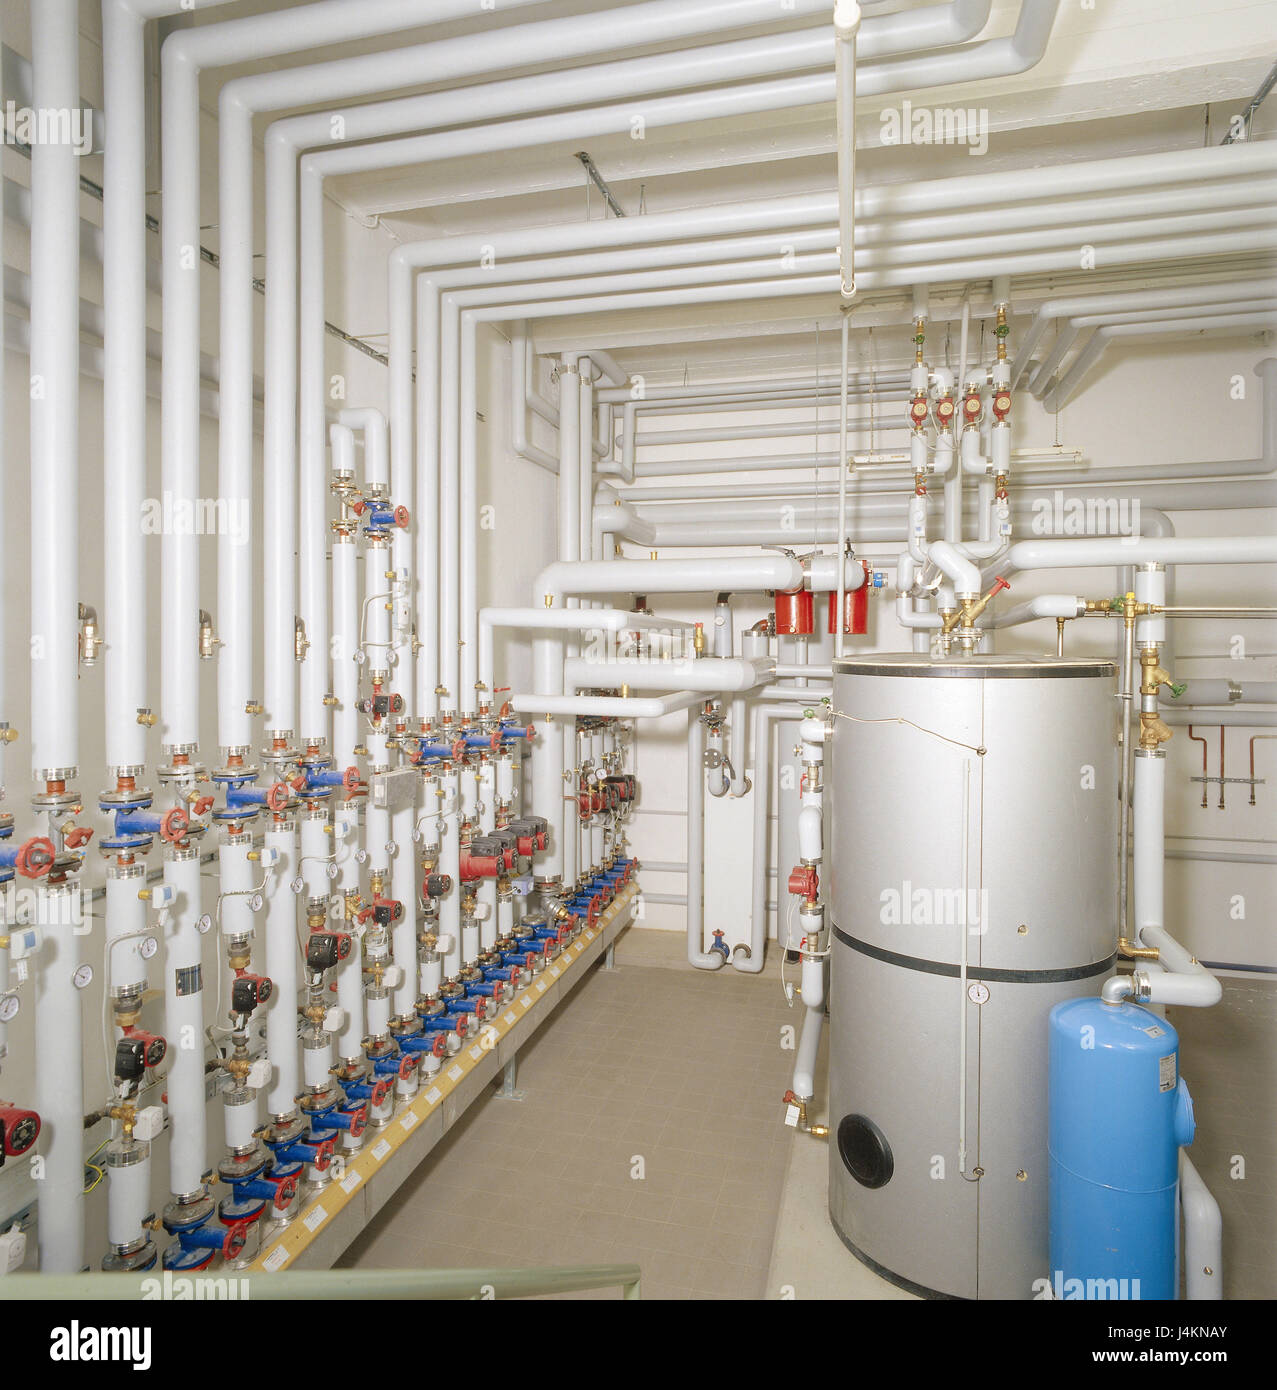 Heating room, to pipe, boiler hot water heating, heating, to pipe ...